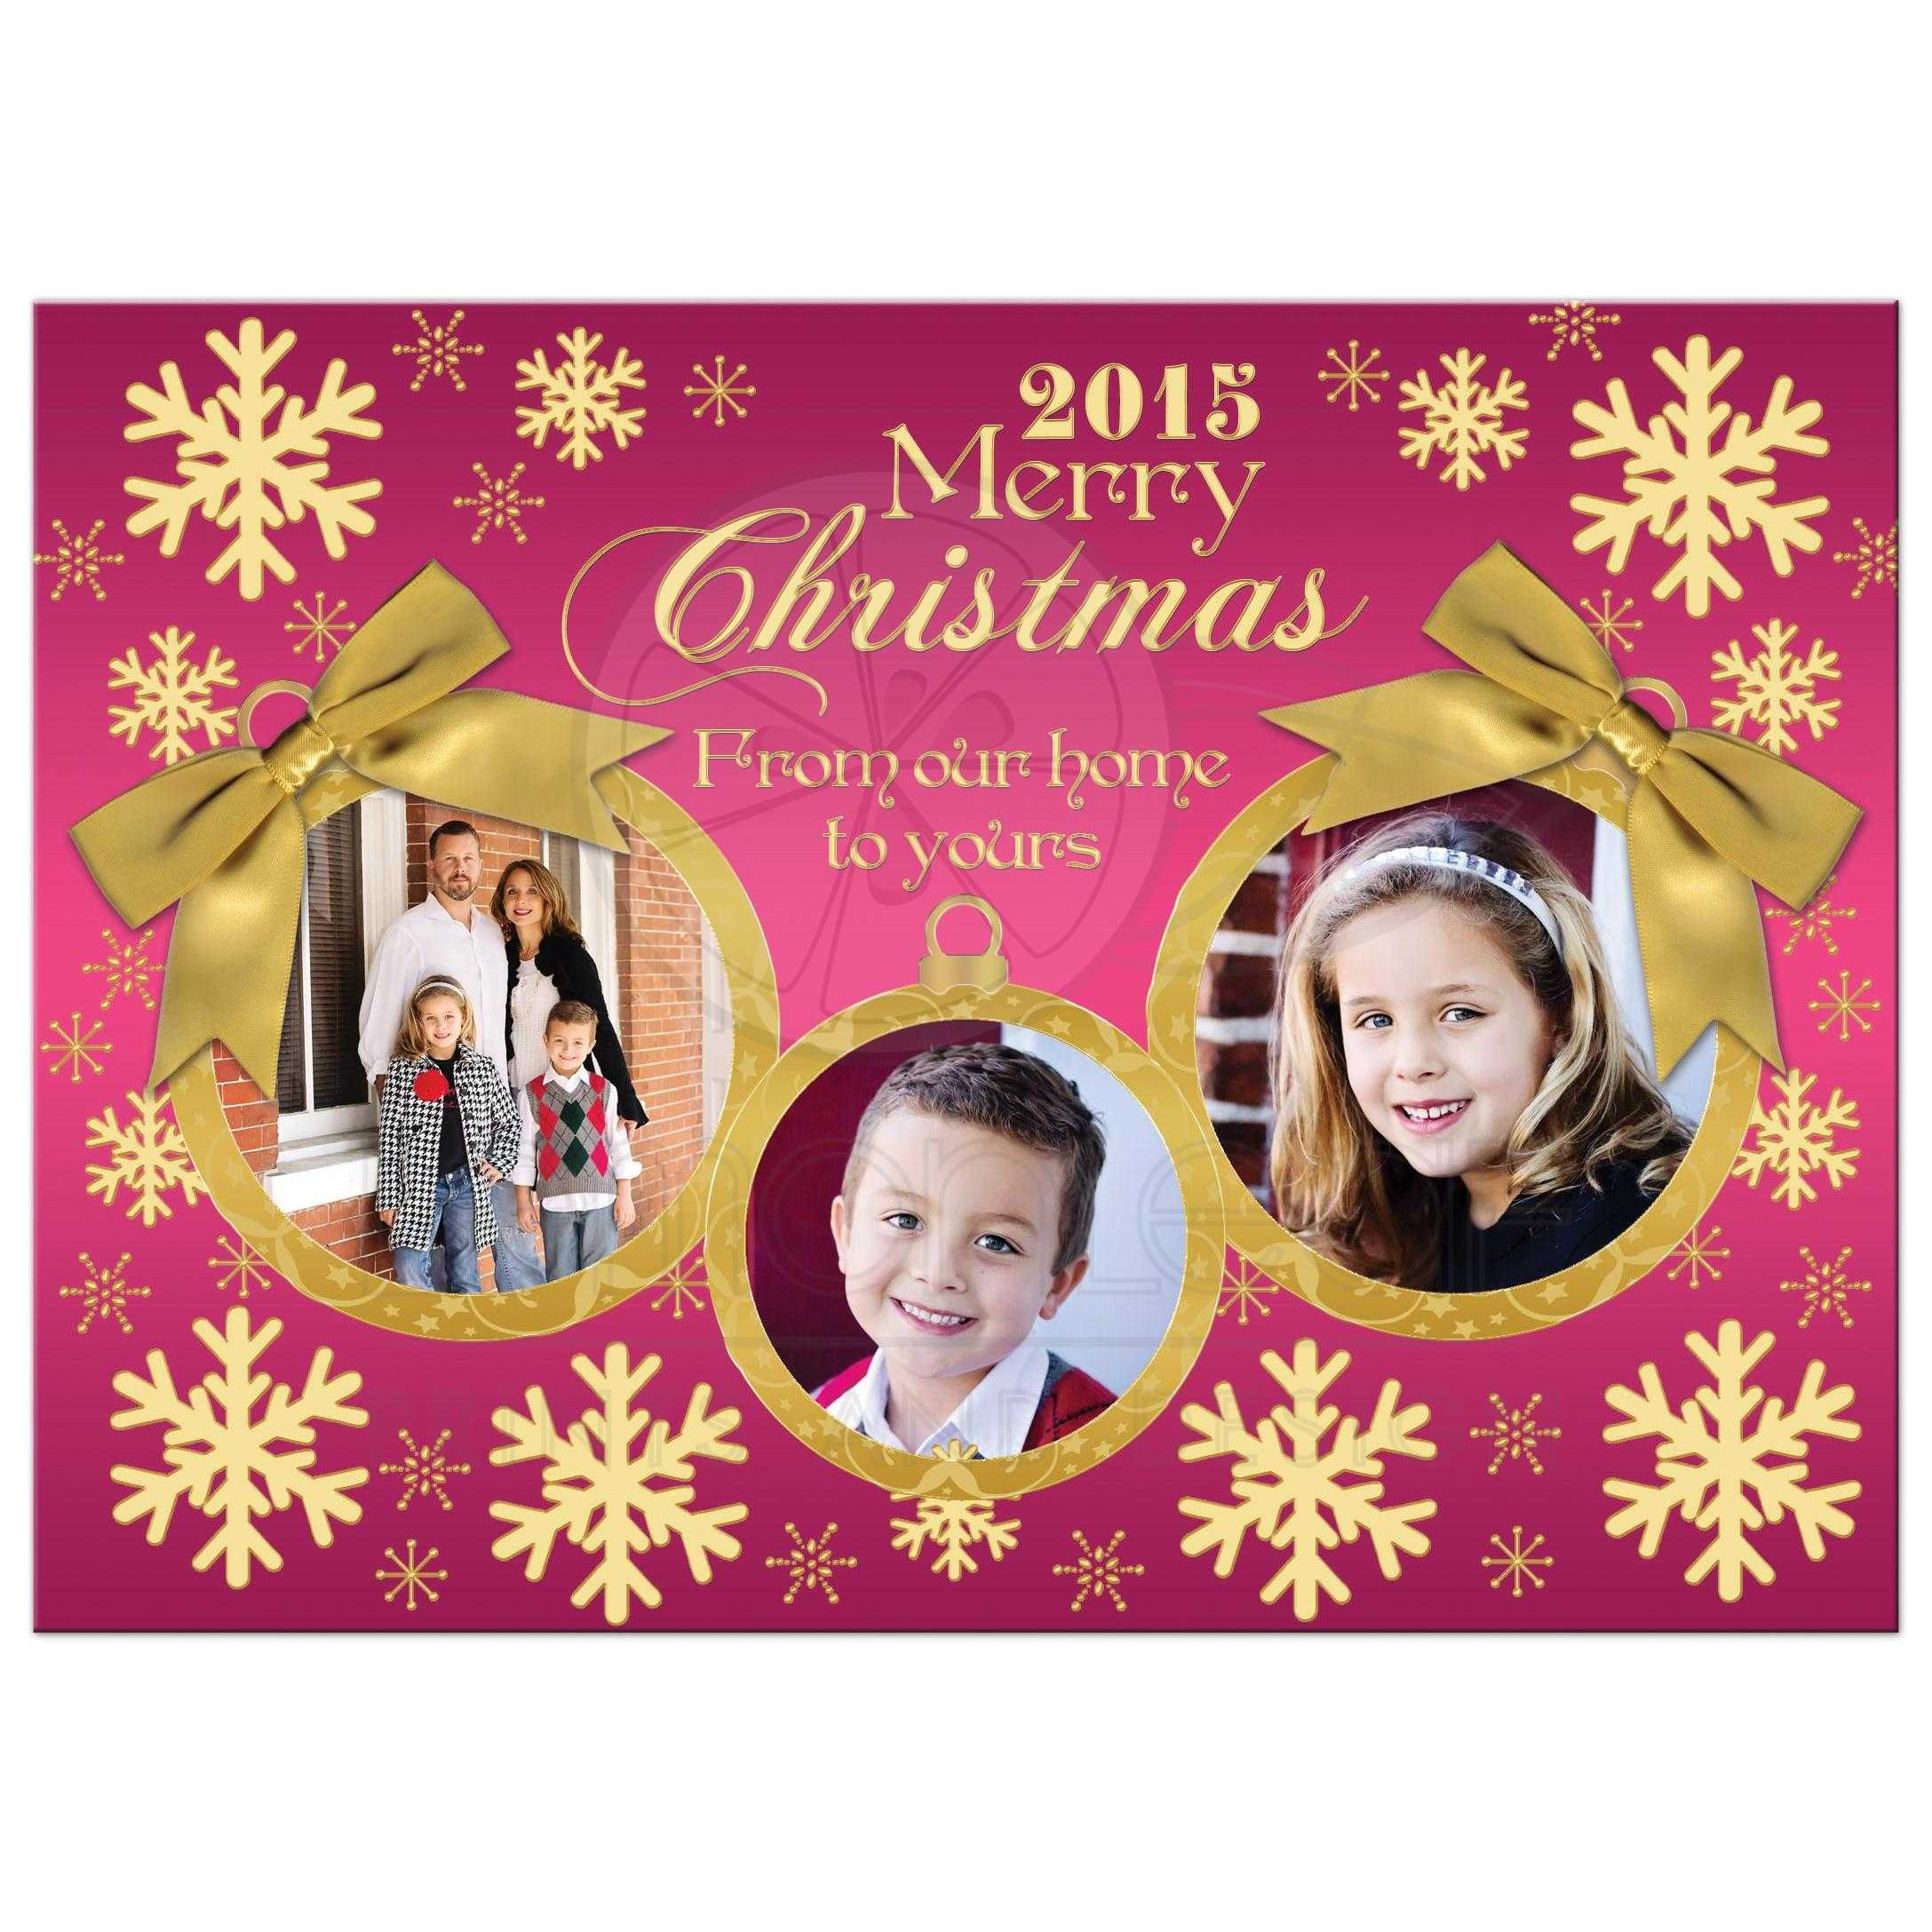 Christmas Photo Card   Pink, Gold Snowflakes   Gold Ornaments ...